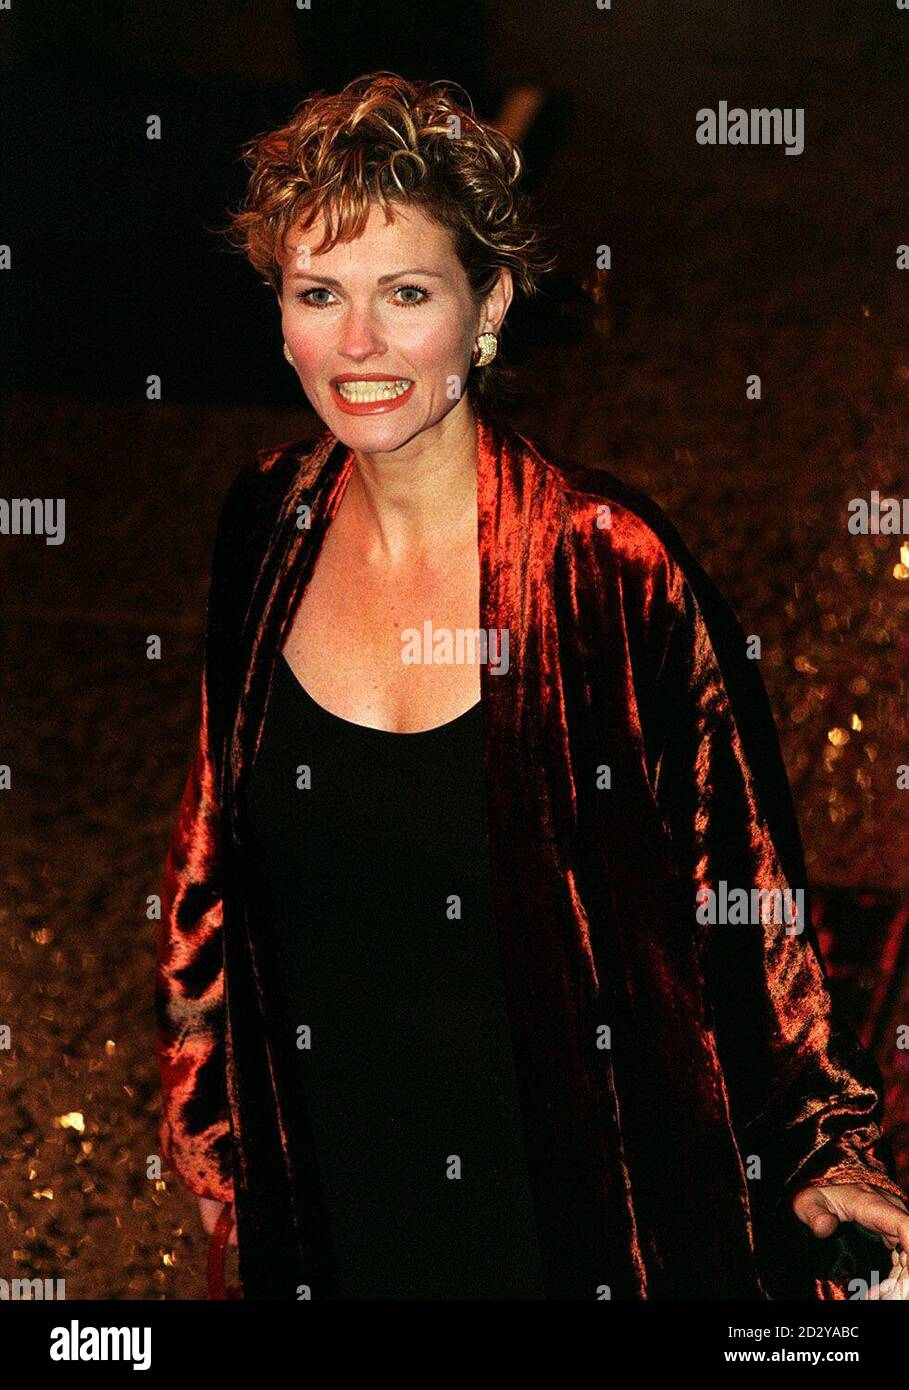 """PA NEWS PHOTO 9/12/97 FIONA FULLERTON ARRIVES AT THE WORLD GALA PREMIERE OF THE NEW JAMES BOND MOVIE """"TOMORROW NEVER DIES"""" AT THE ODEON CINEMA IN LEICESTER SQUARE, LONDON Stock Photo"""